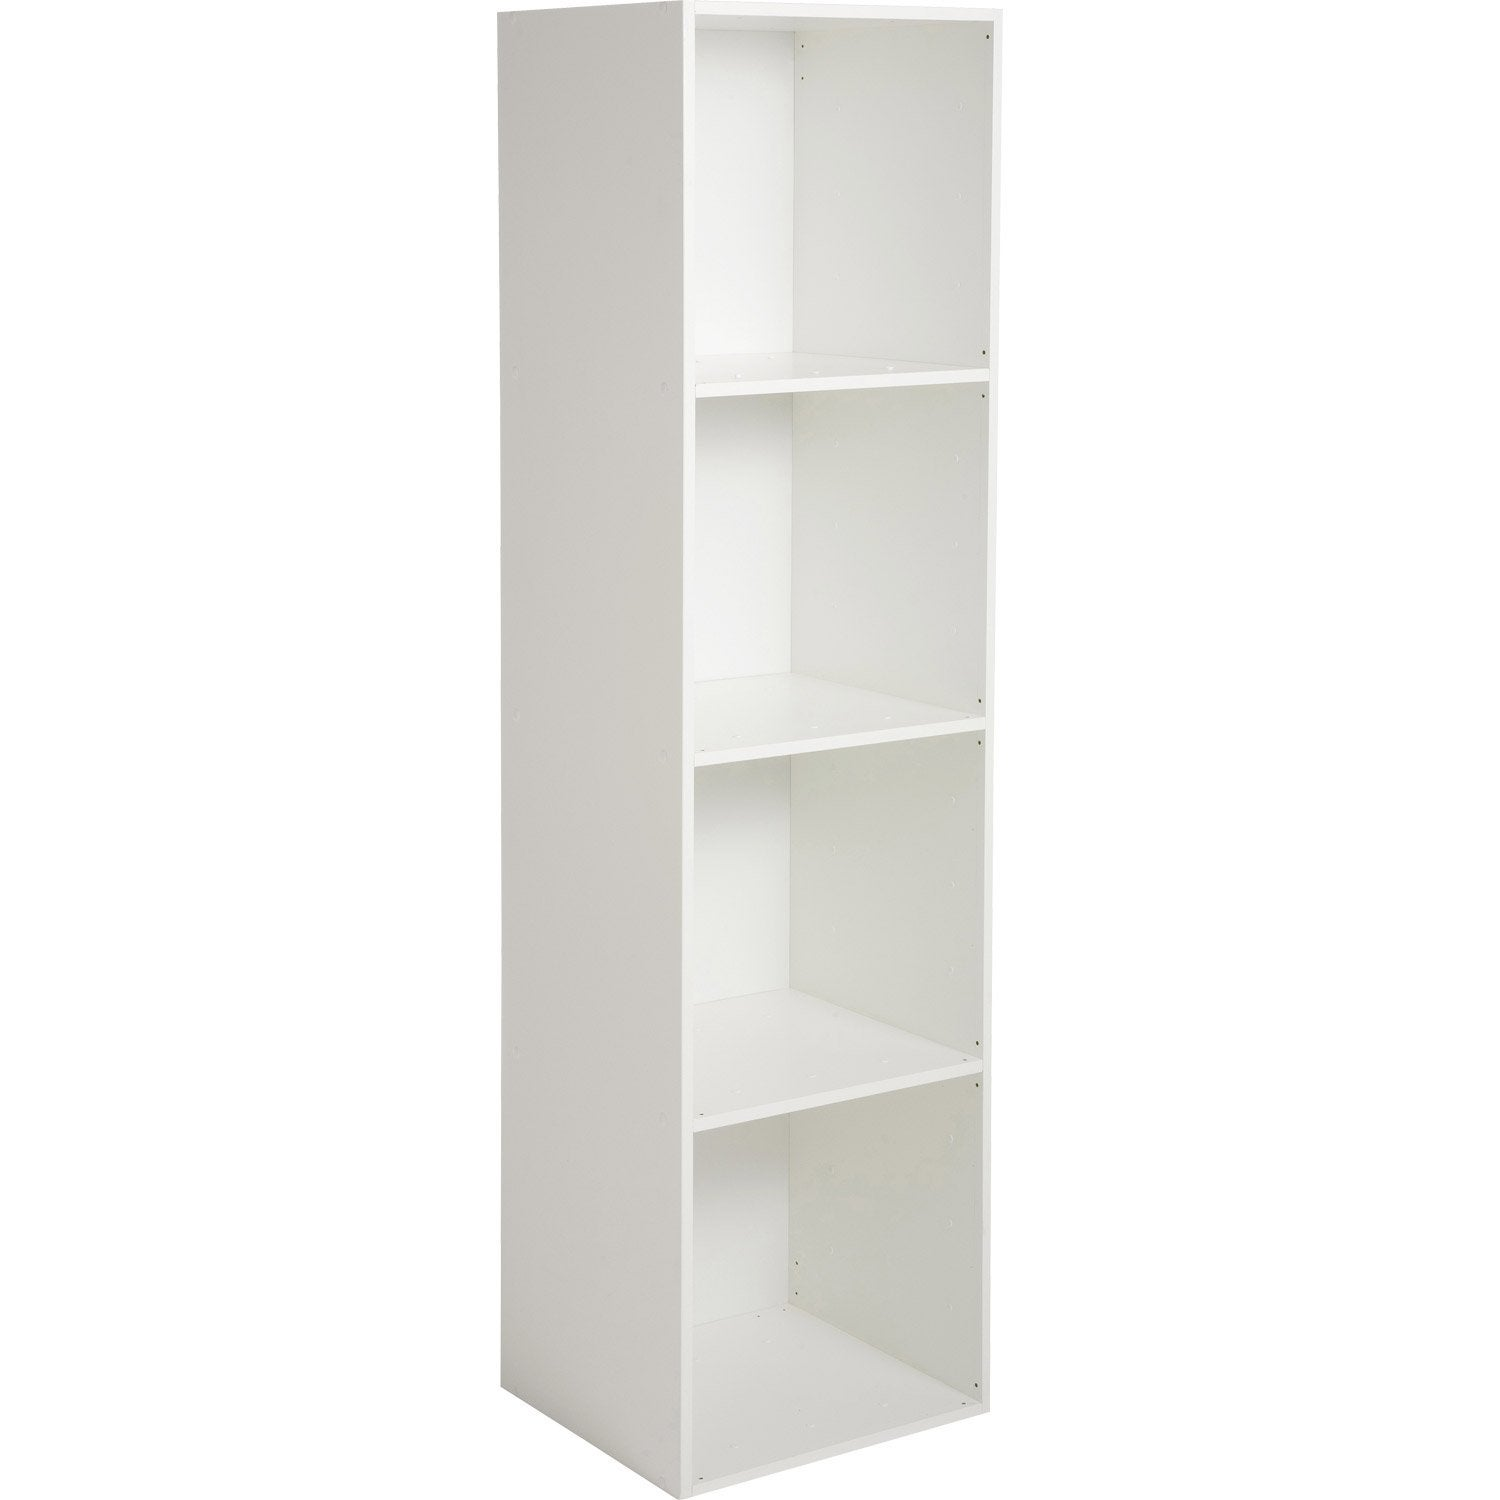 Etag re 4 cases multikaz blanc x x - Castorama meuble de rangement ...